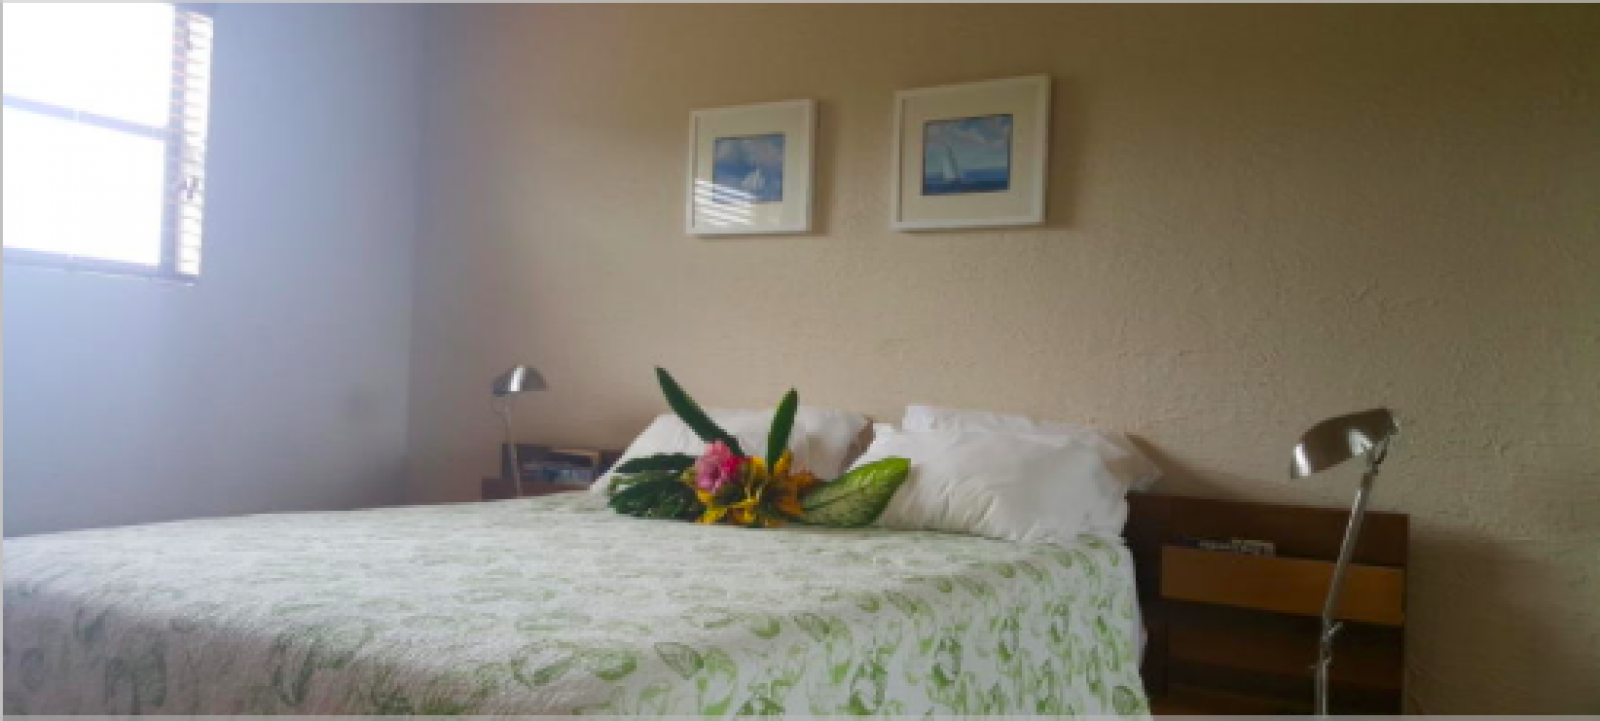 Condominium 2 bedroom/2 bathroom Fully furnished Pineapple Villas Pools x 4 Investment Rental potential Central air  Granite counter tops, superior fixtures and fittings, finishings and high-end appliances.  Gym Spa Restaurant & sports bar 24 hour security 4 community pools  Generator Golf course